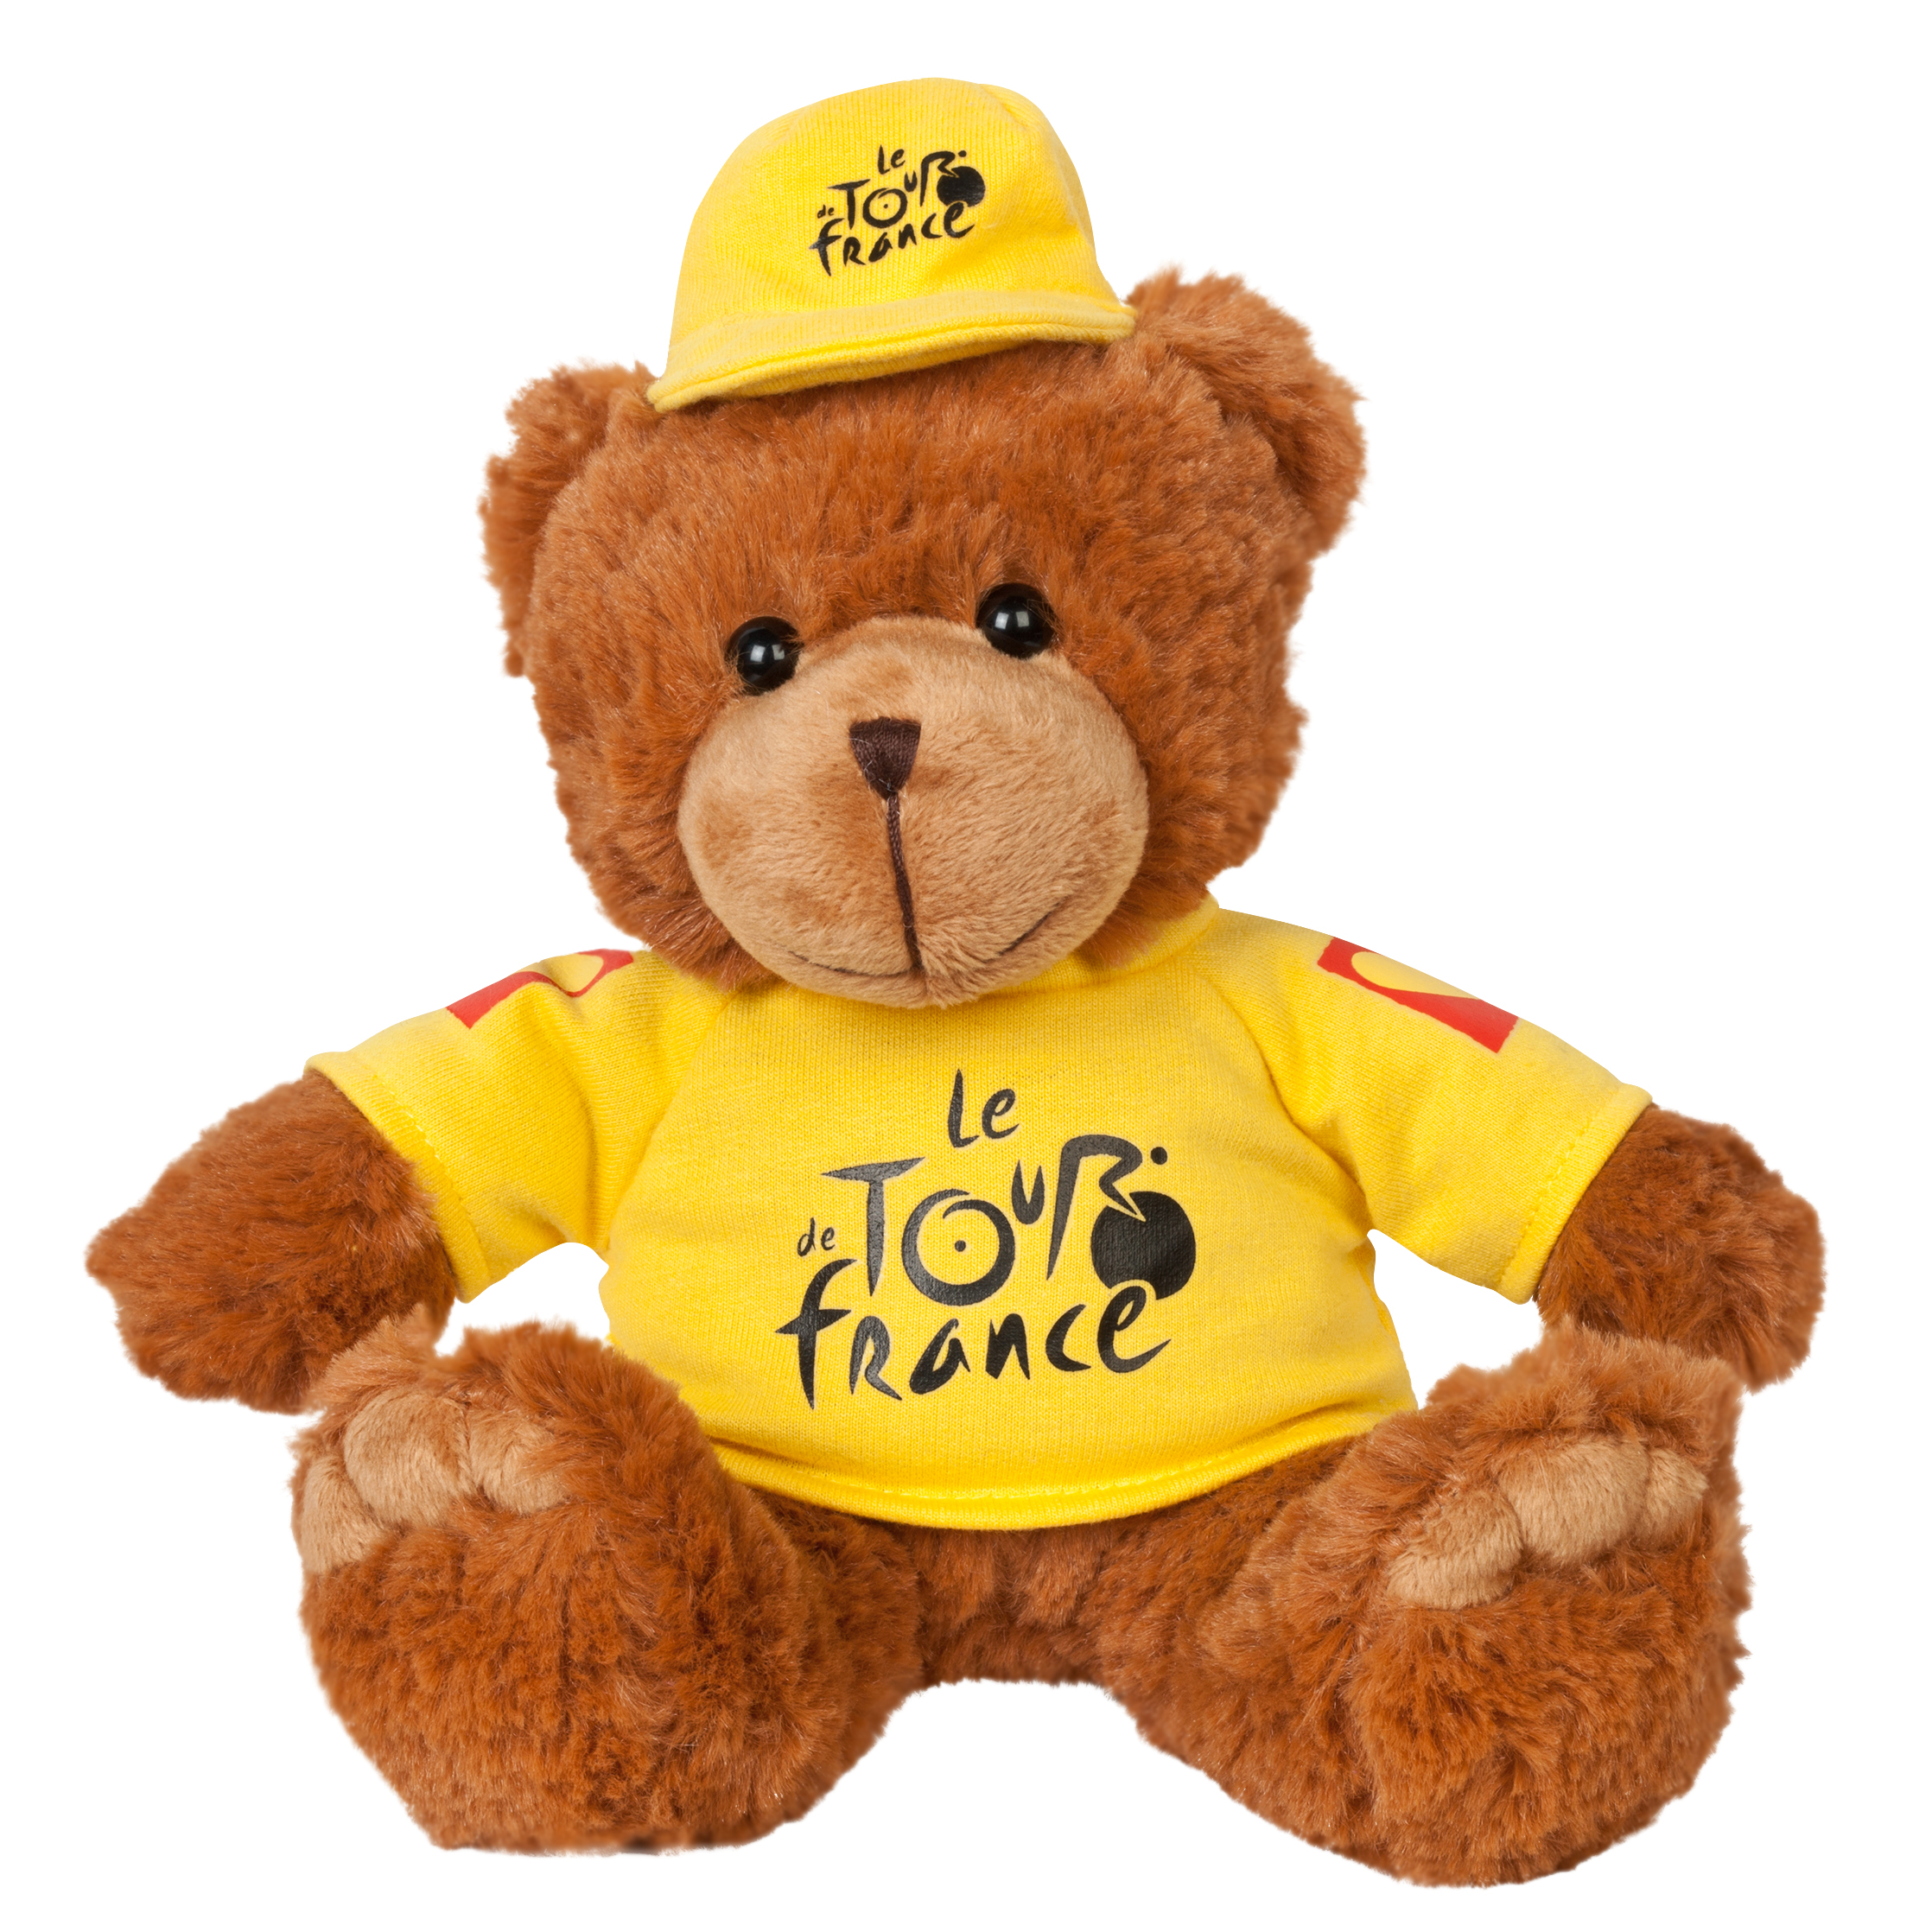 Le Tour de France Teddy Bear